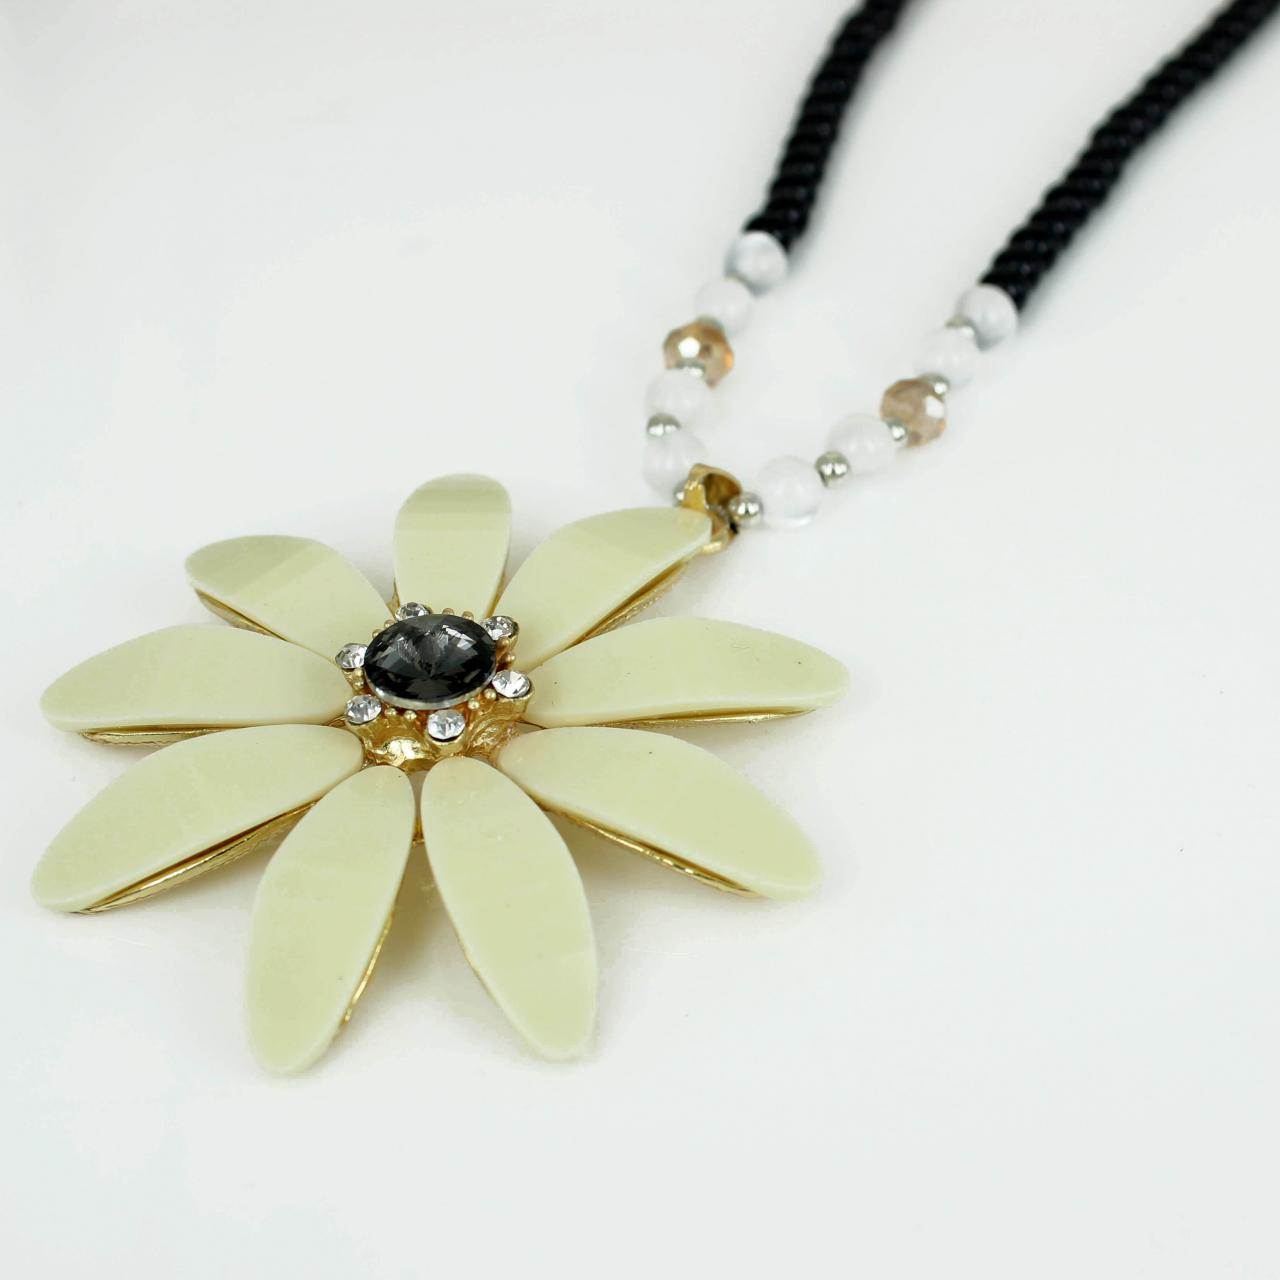 flower necklace for women long chain necklace gift